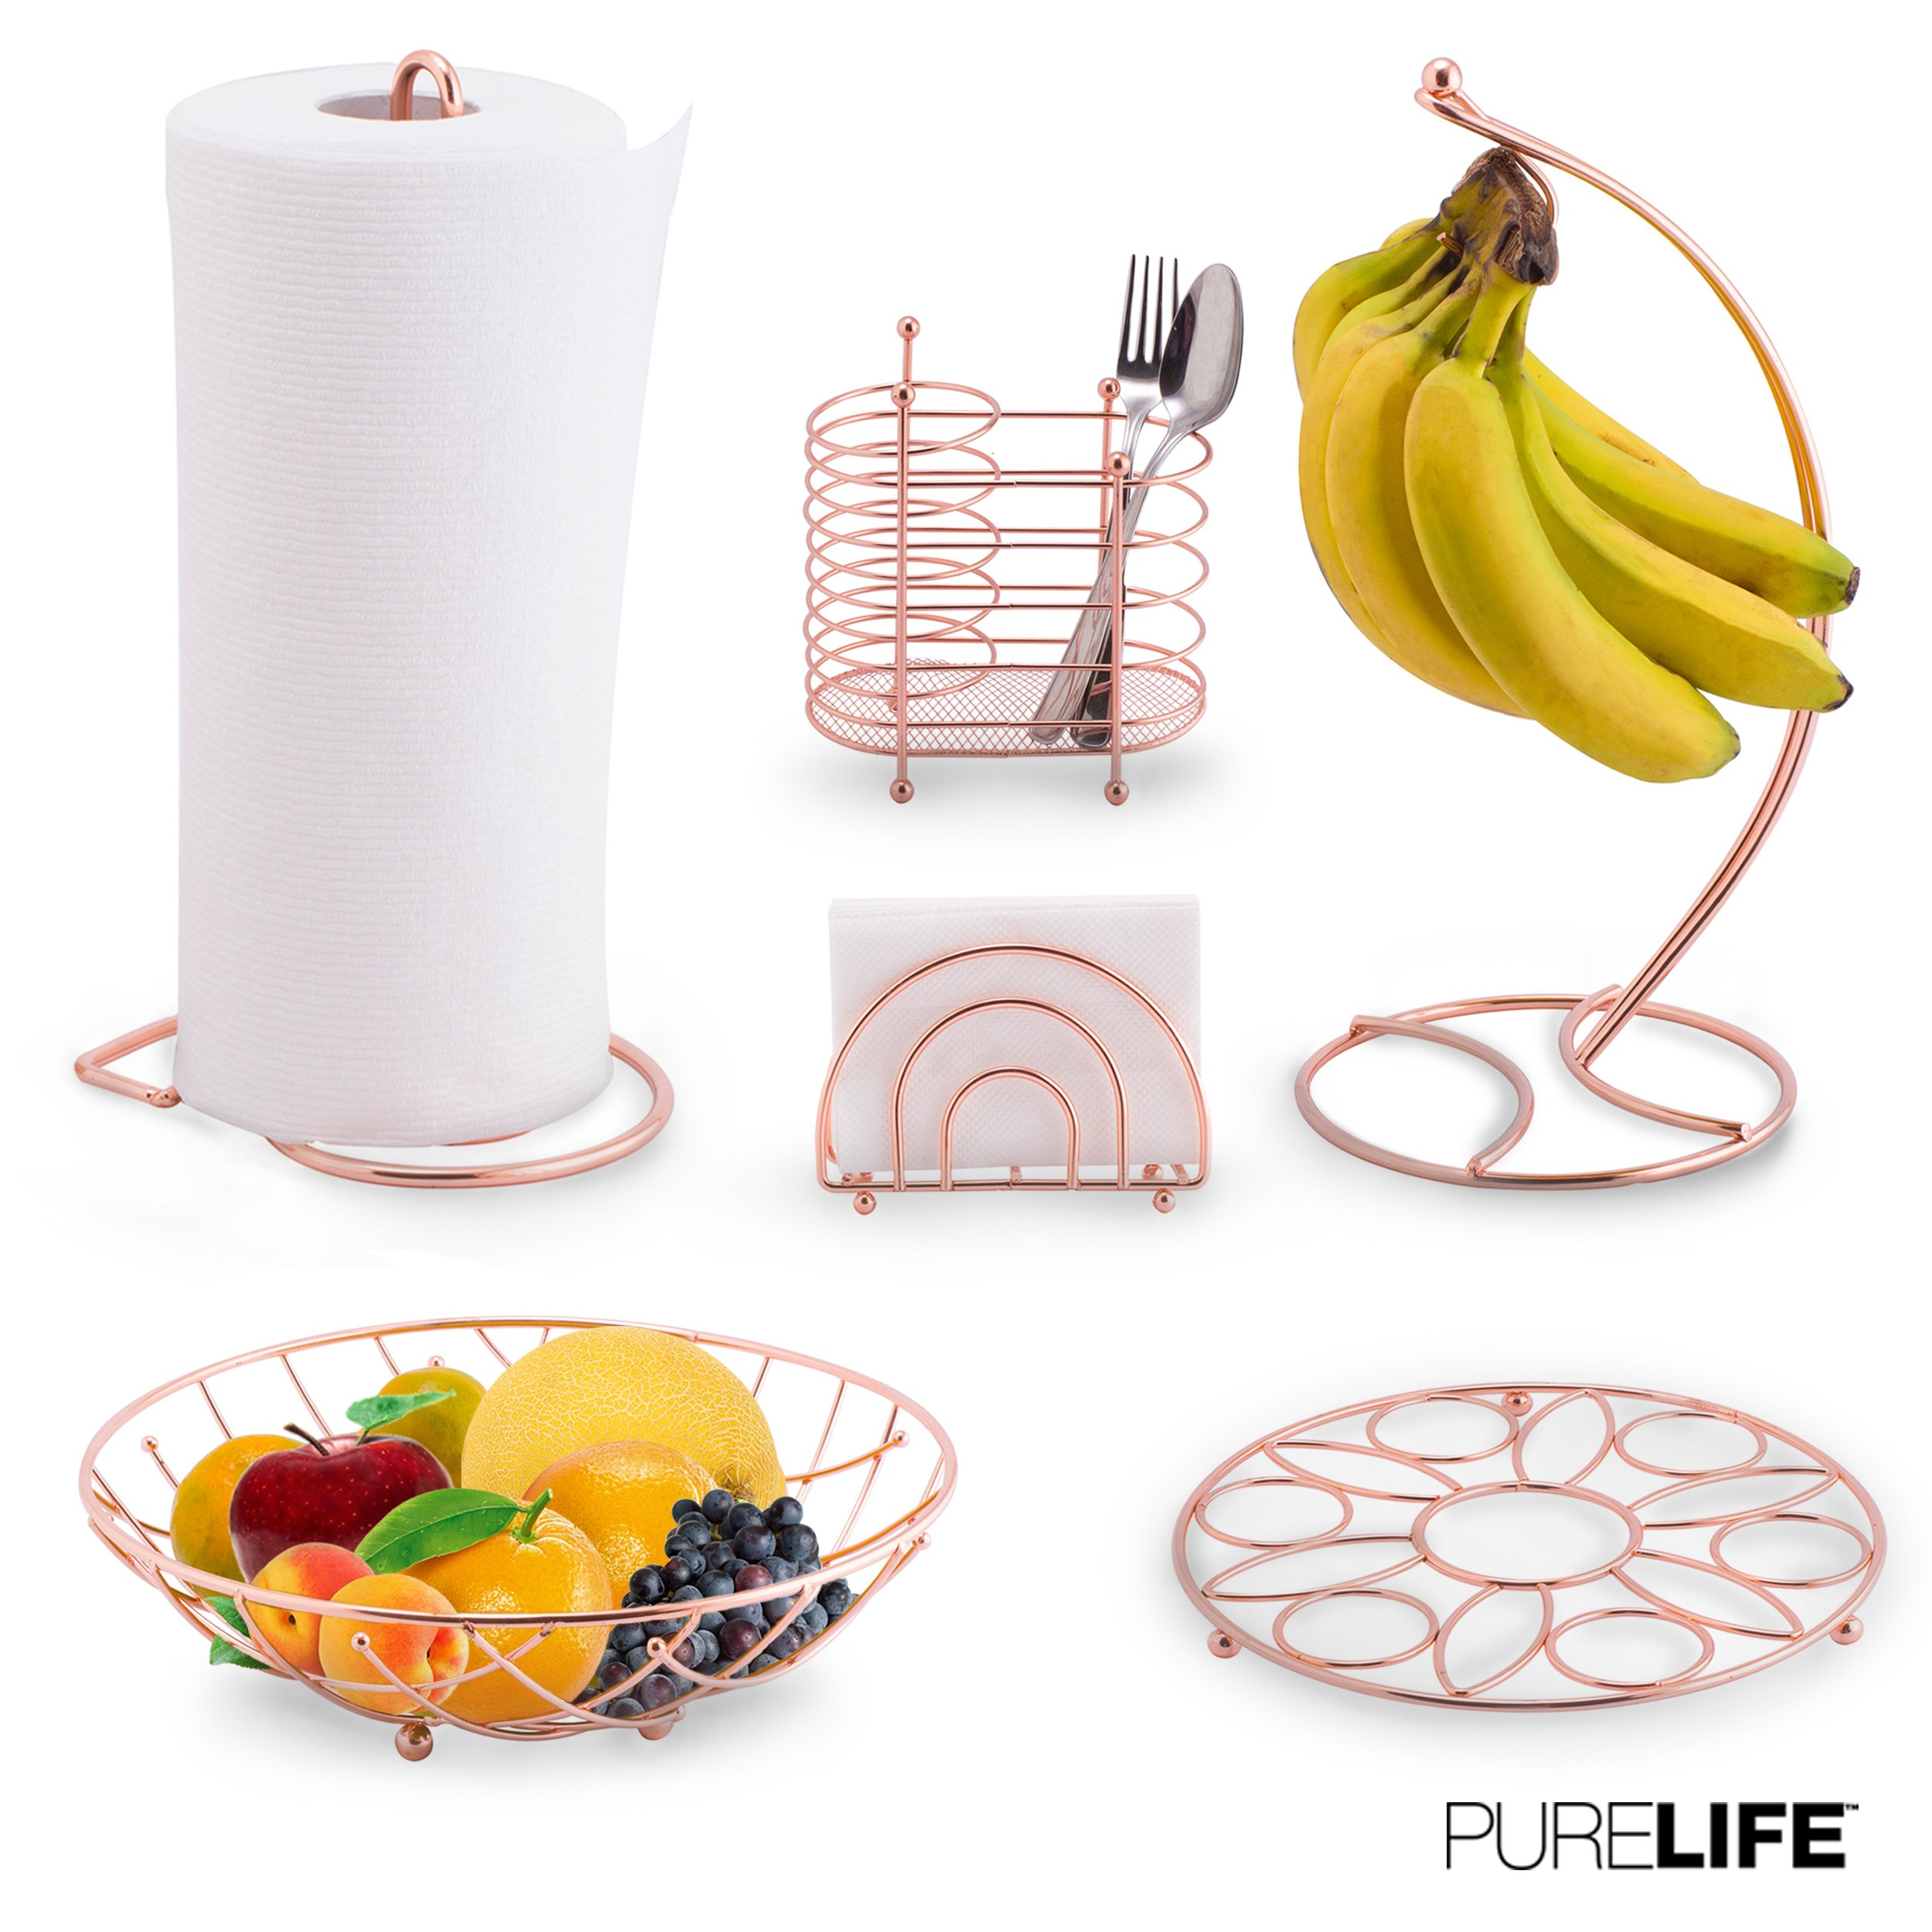 Kitchen Set 6pc | Fruit Basket, Banana Holder, Utensil Holder, Napkin Holder, Trivet & Paper Towel Holder - Double Coated Copper Finish Collection for Countertop Table Decor | Heat Resistant Tool by purelife